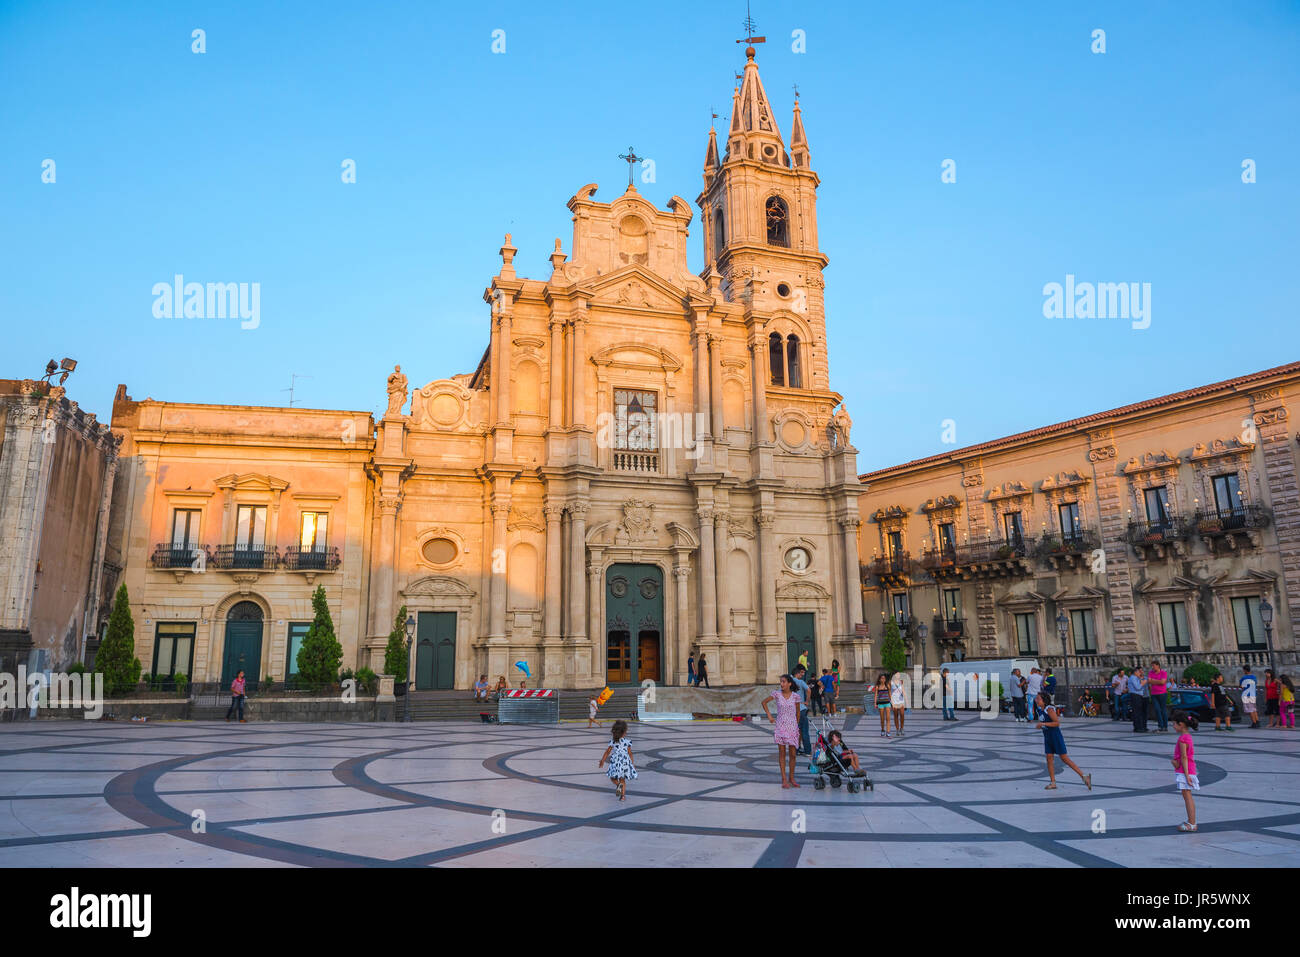 Sicily piazza children, children at play in the Piazza Duomo in Acireale, near Catania, Sicily. - Stock Image